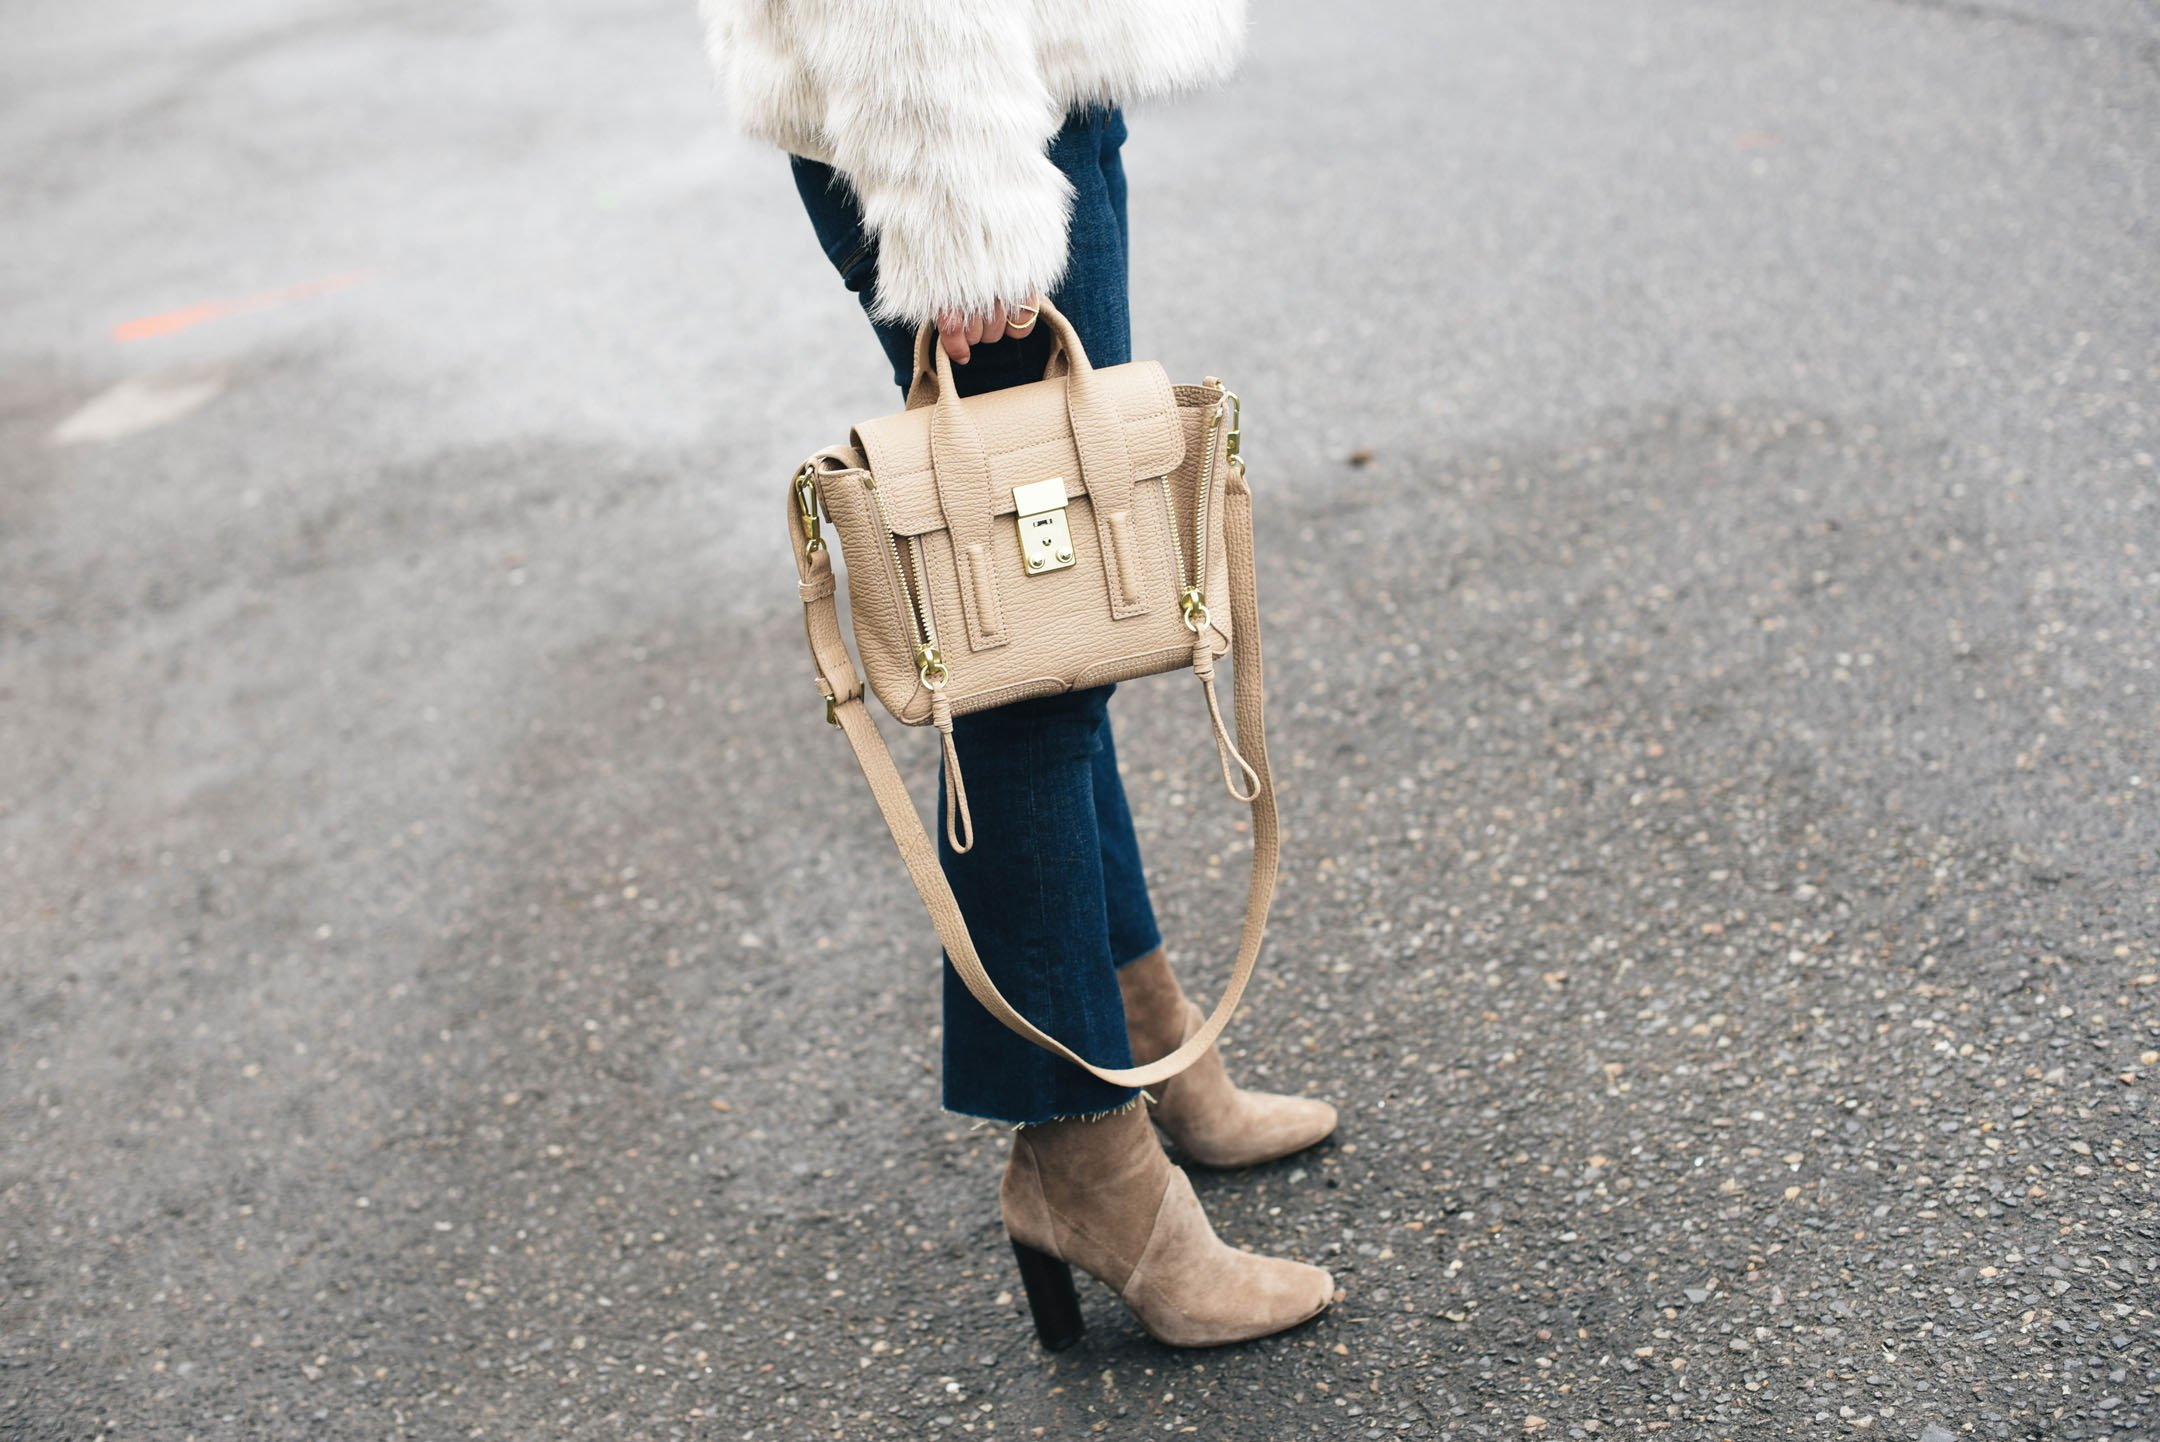 3.1 Phillip Lim mini pashli in cashew